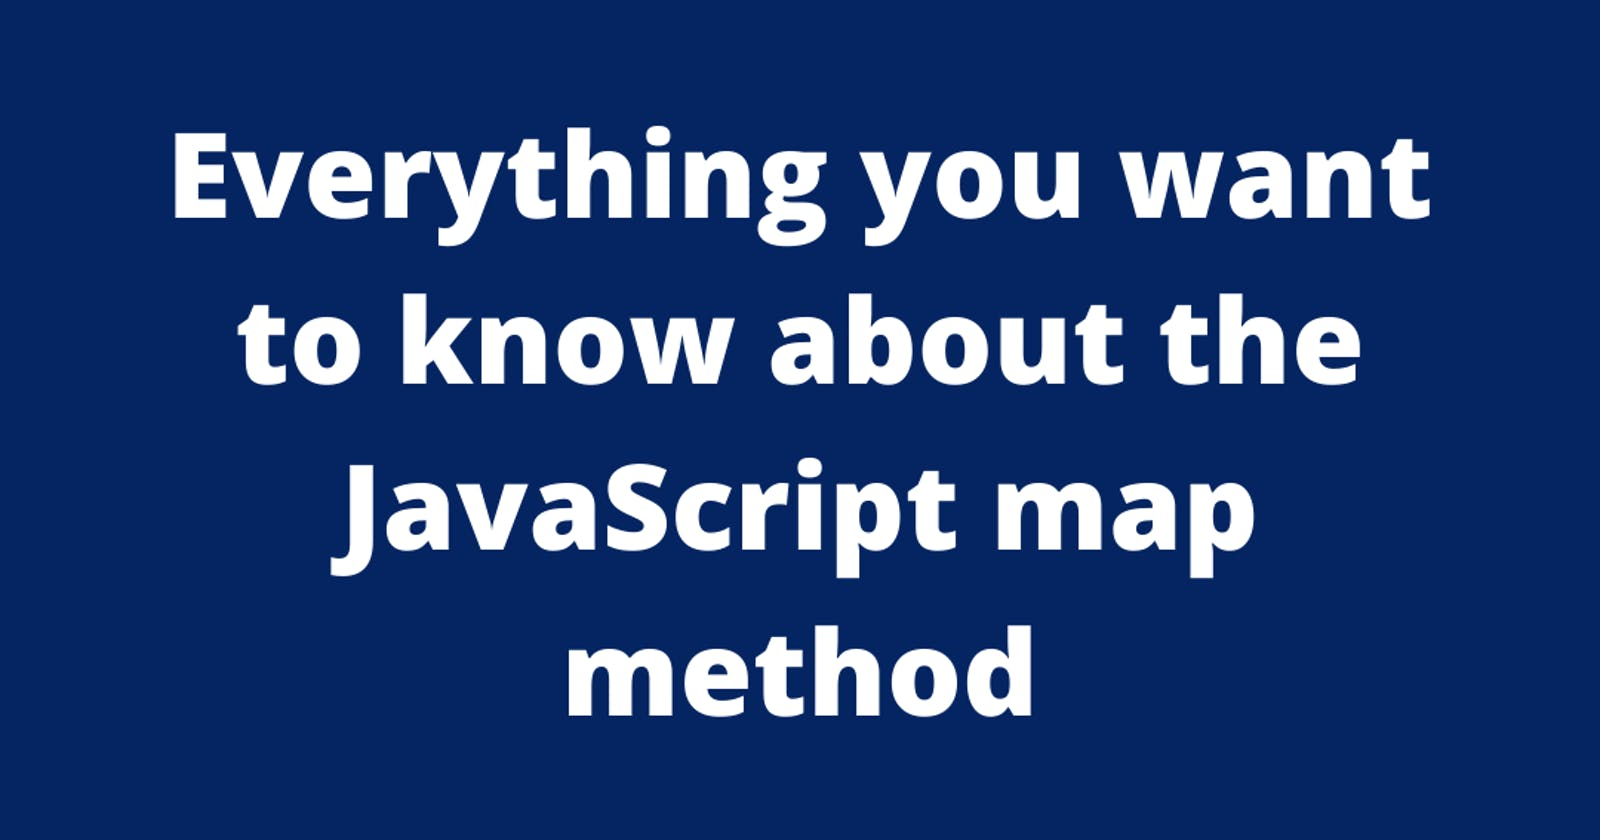 Everything you want to know about the JavaScript map method